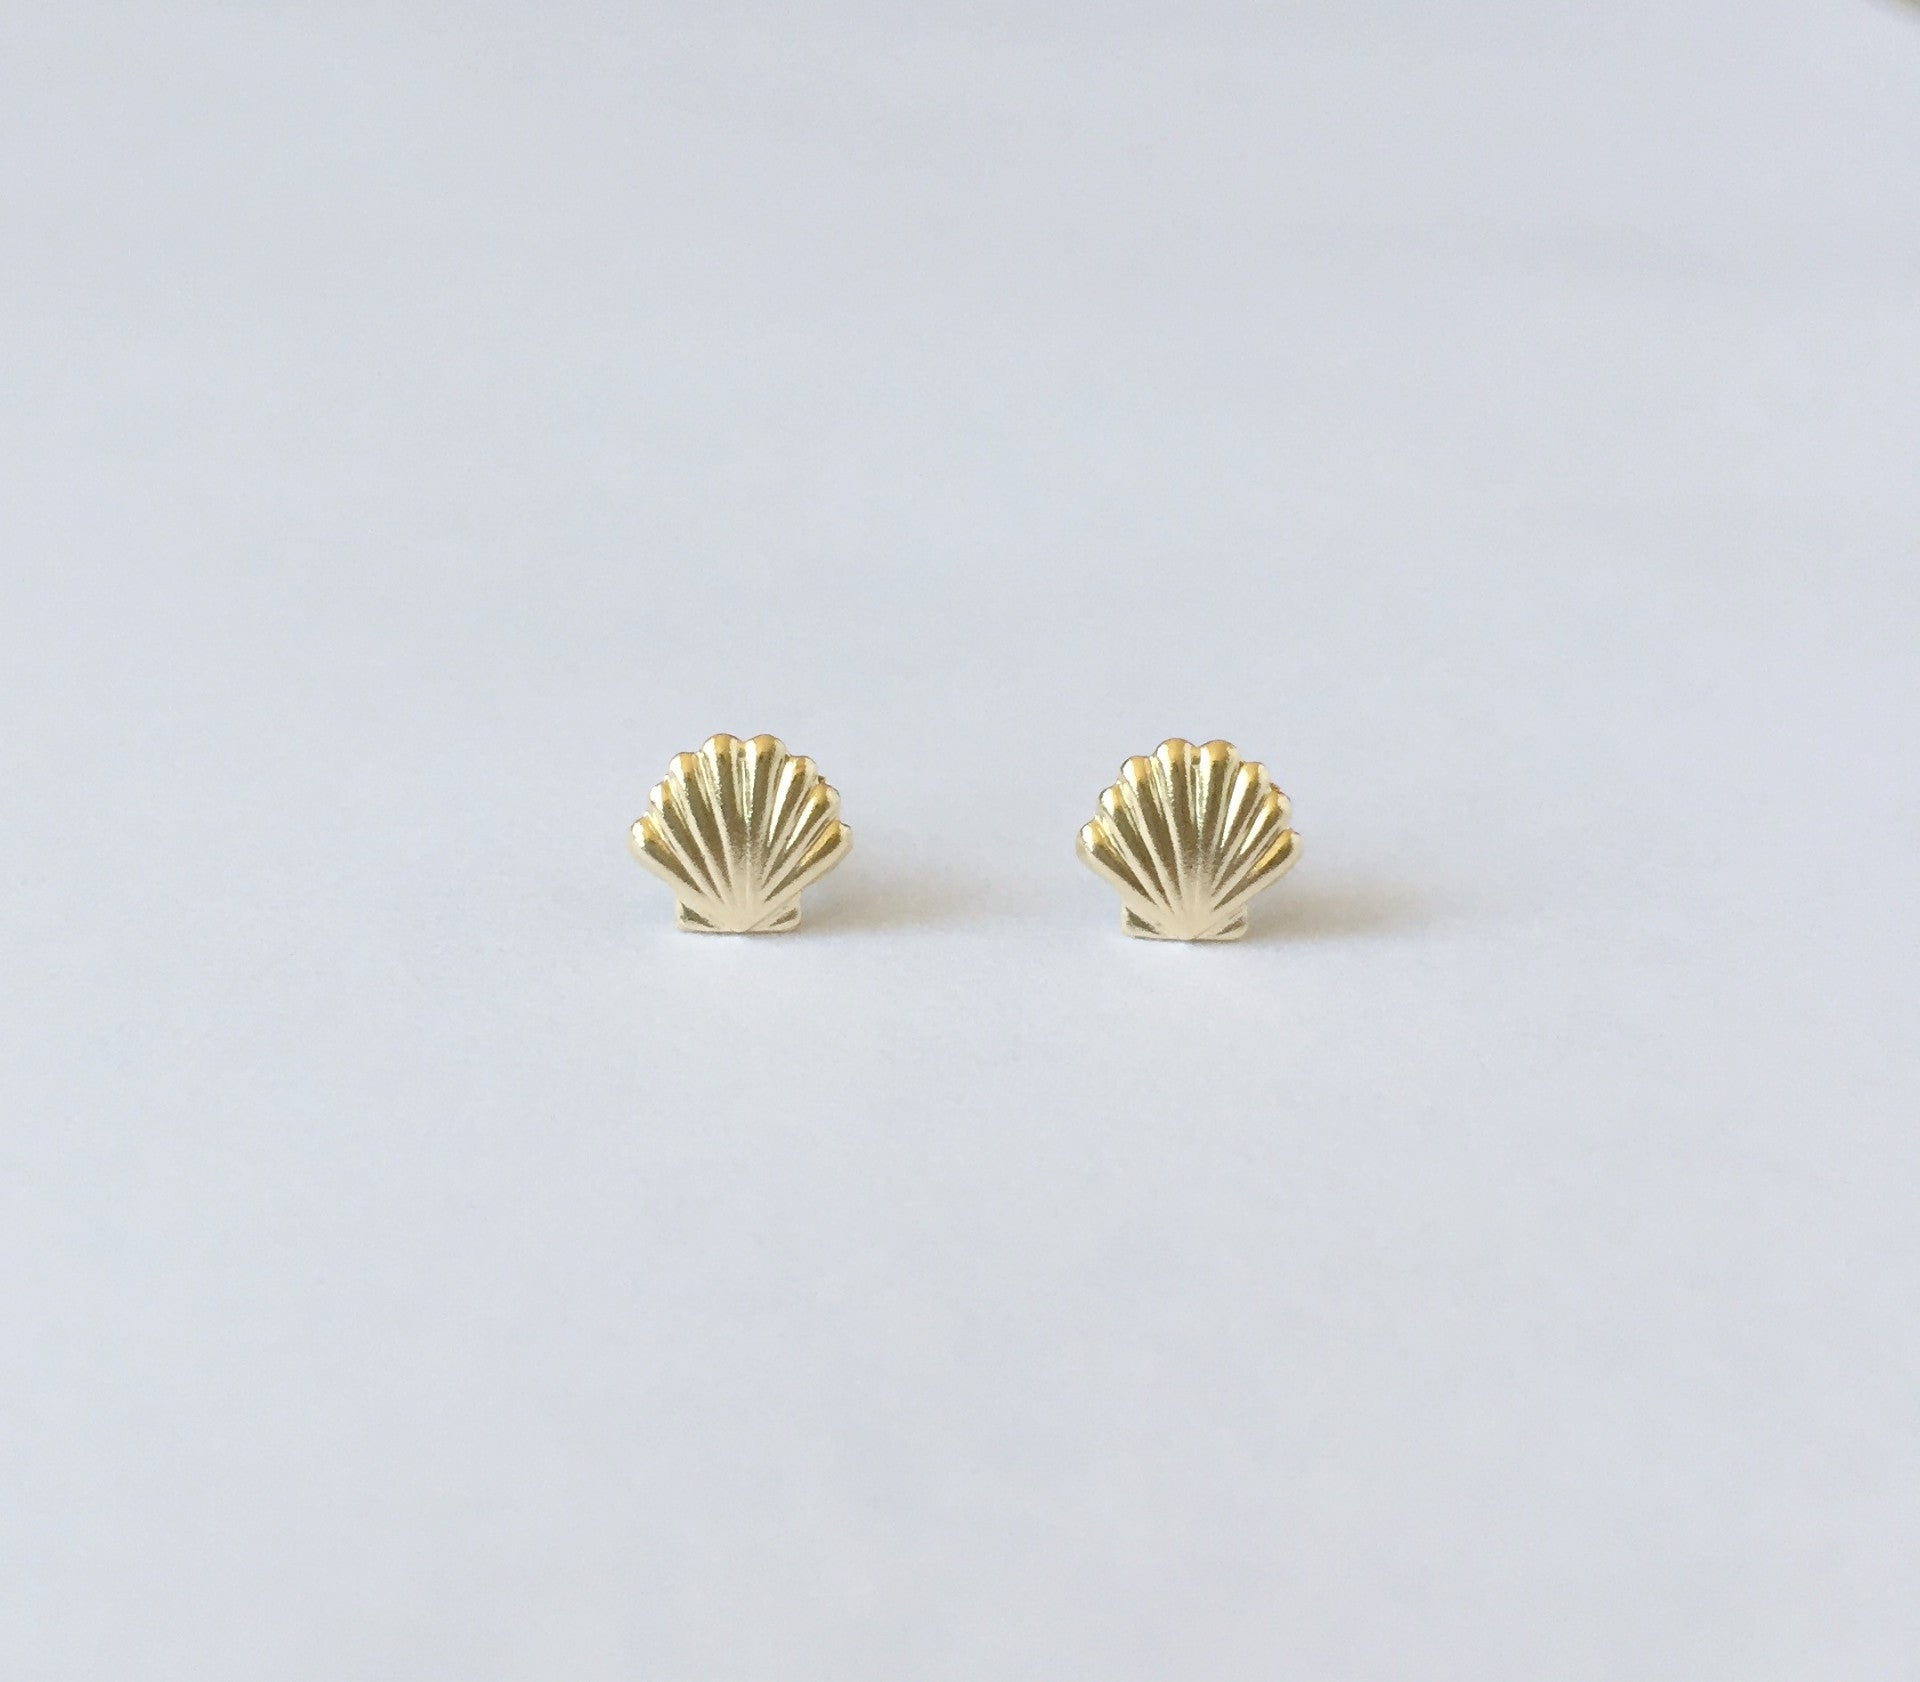 steel olizz bridesmaid earrings tiny gold bow stainless post everyday stud handmade